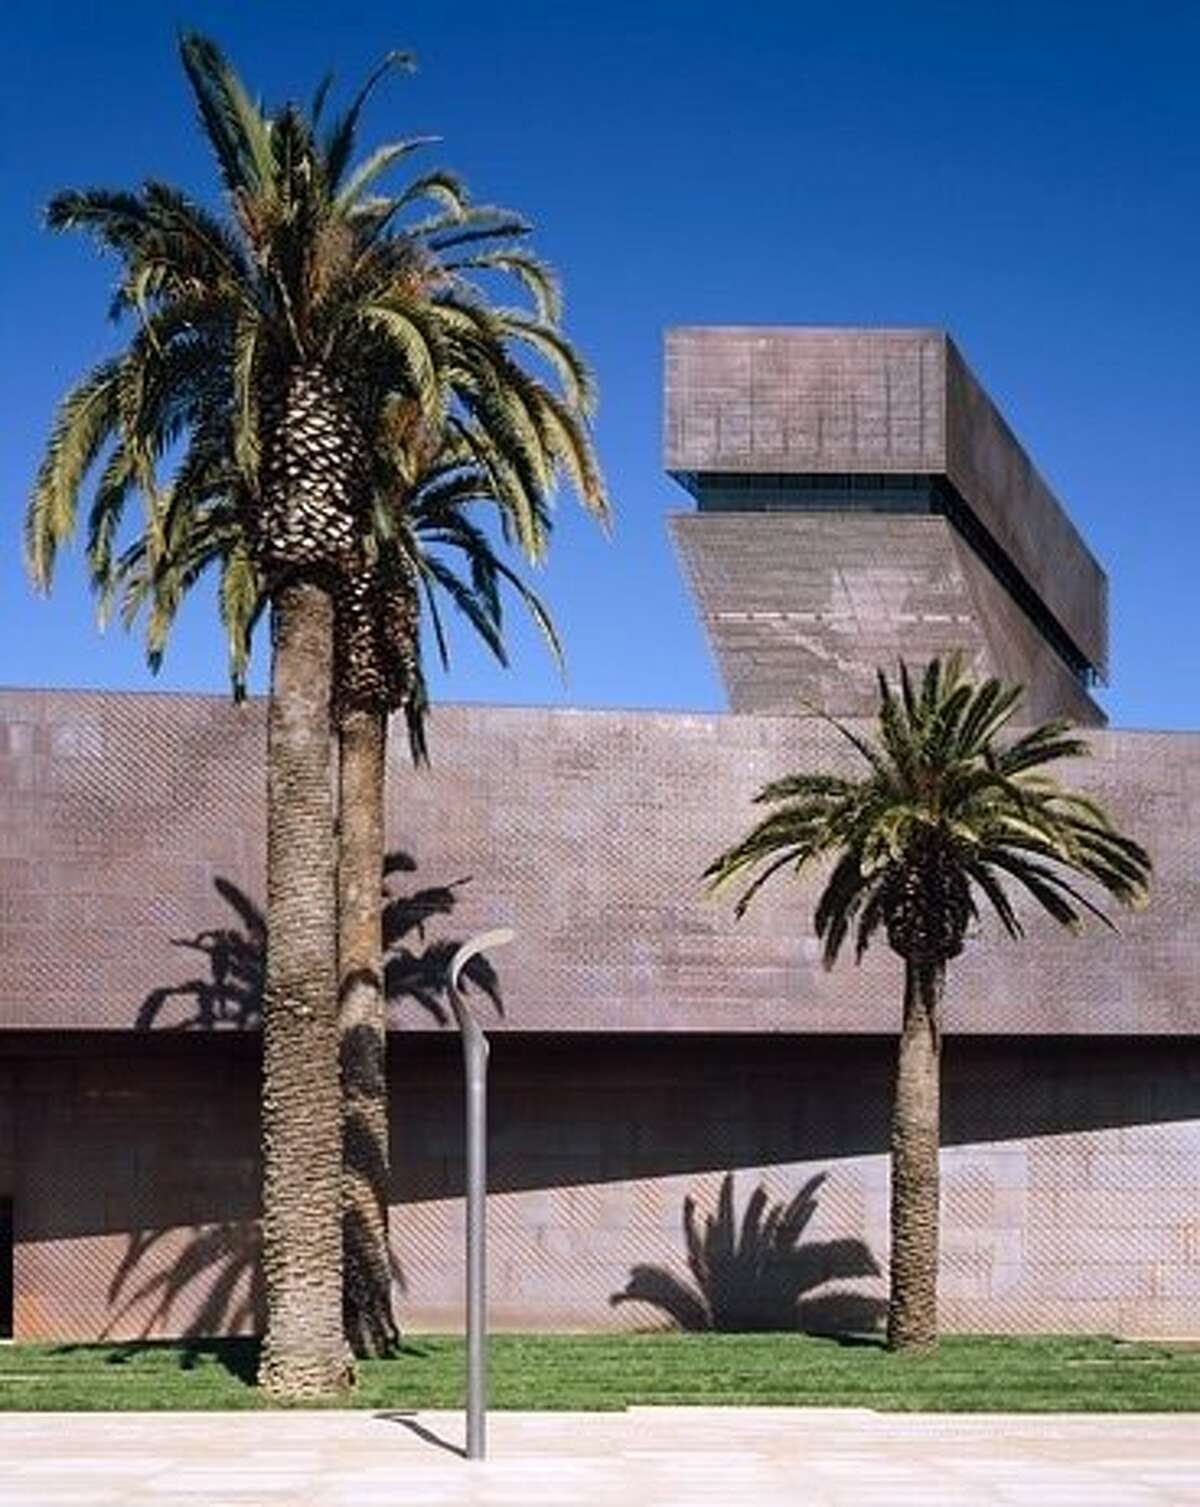 AThe Tower of the new de Young Museum.